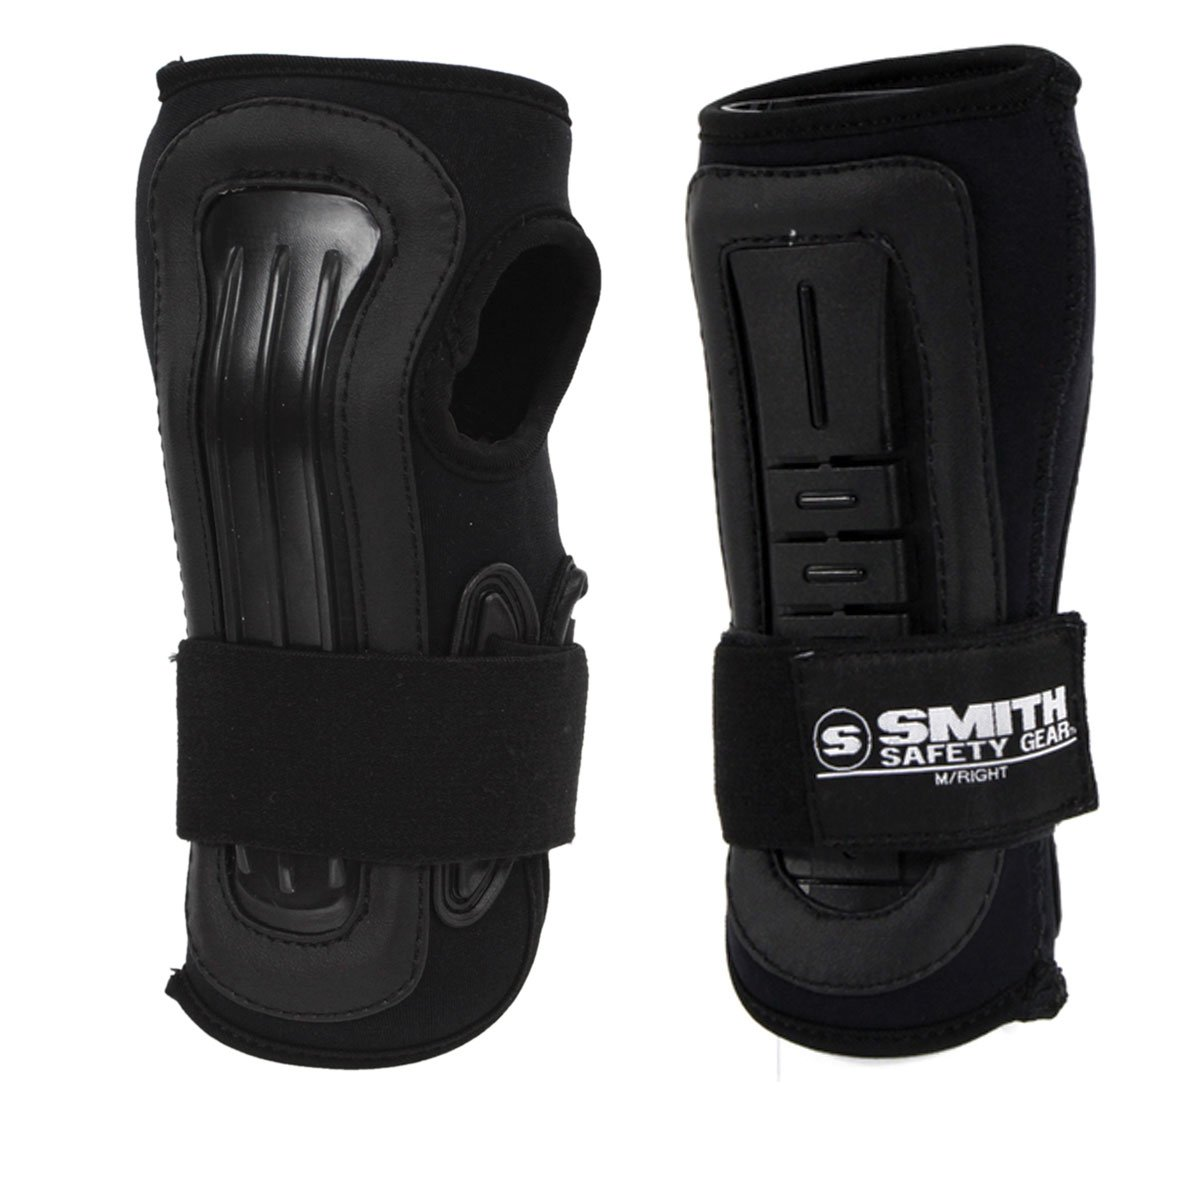 Smith Safety Gear Scabs Pro Wrist Stabilizer, Black/Black, Small by Smith Safety Gear